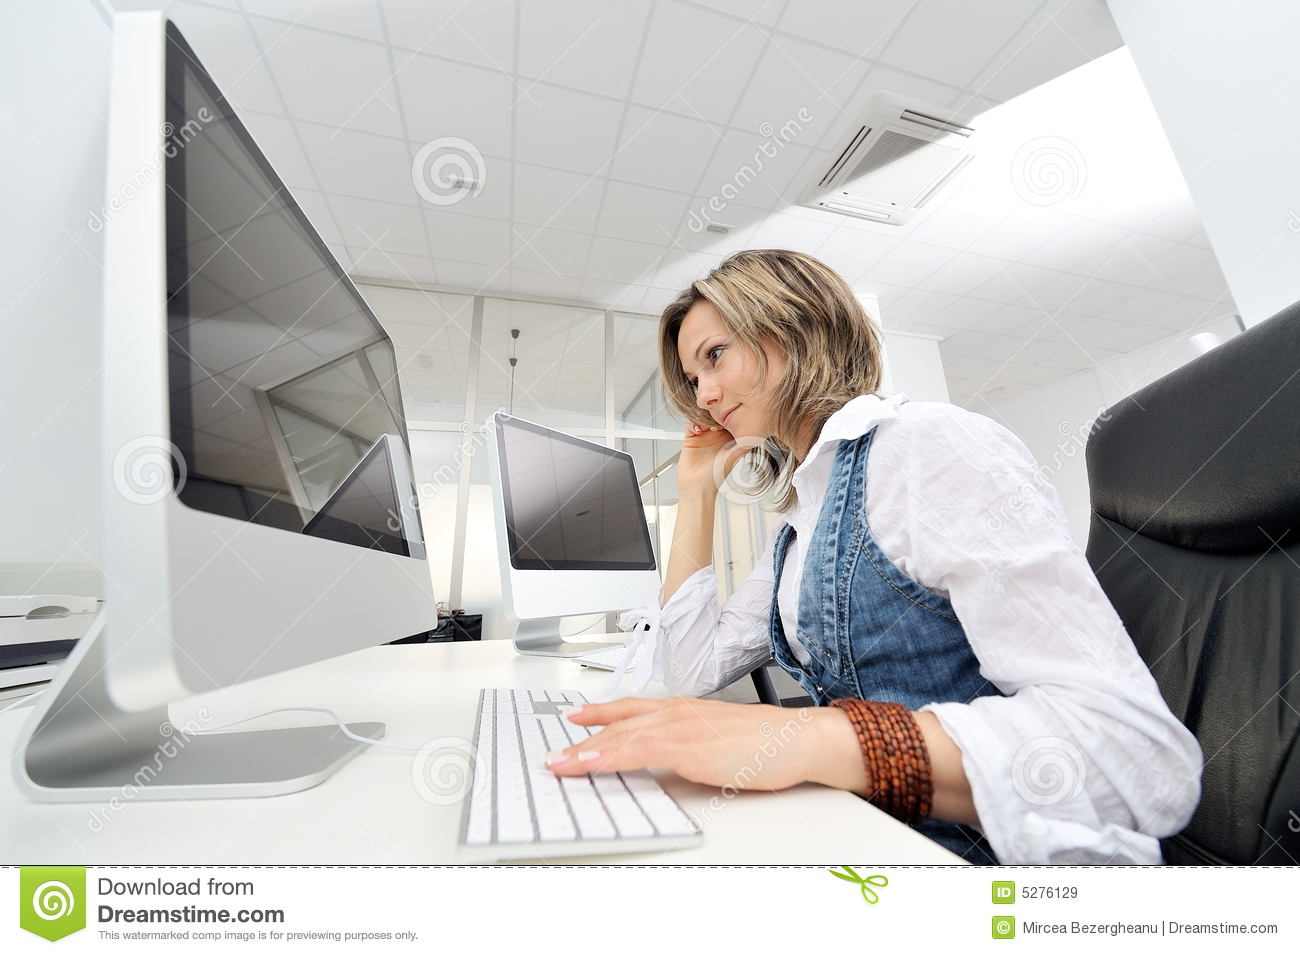 young-woman-working-office-5276129.jpg